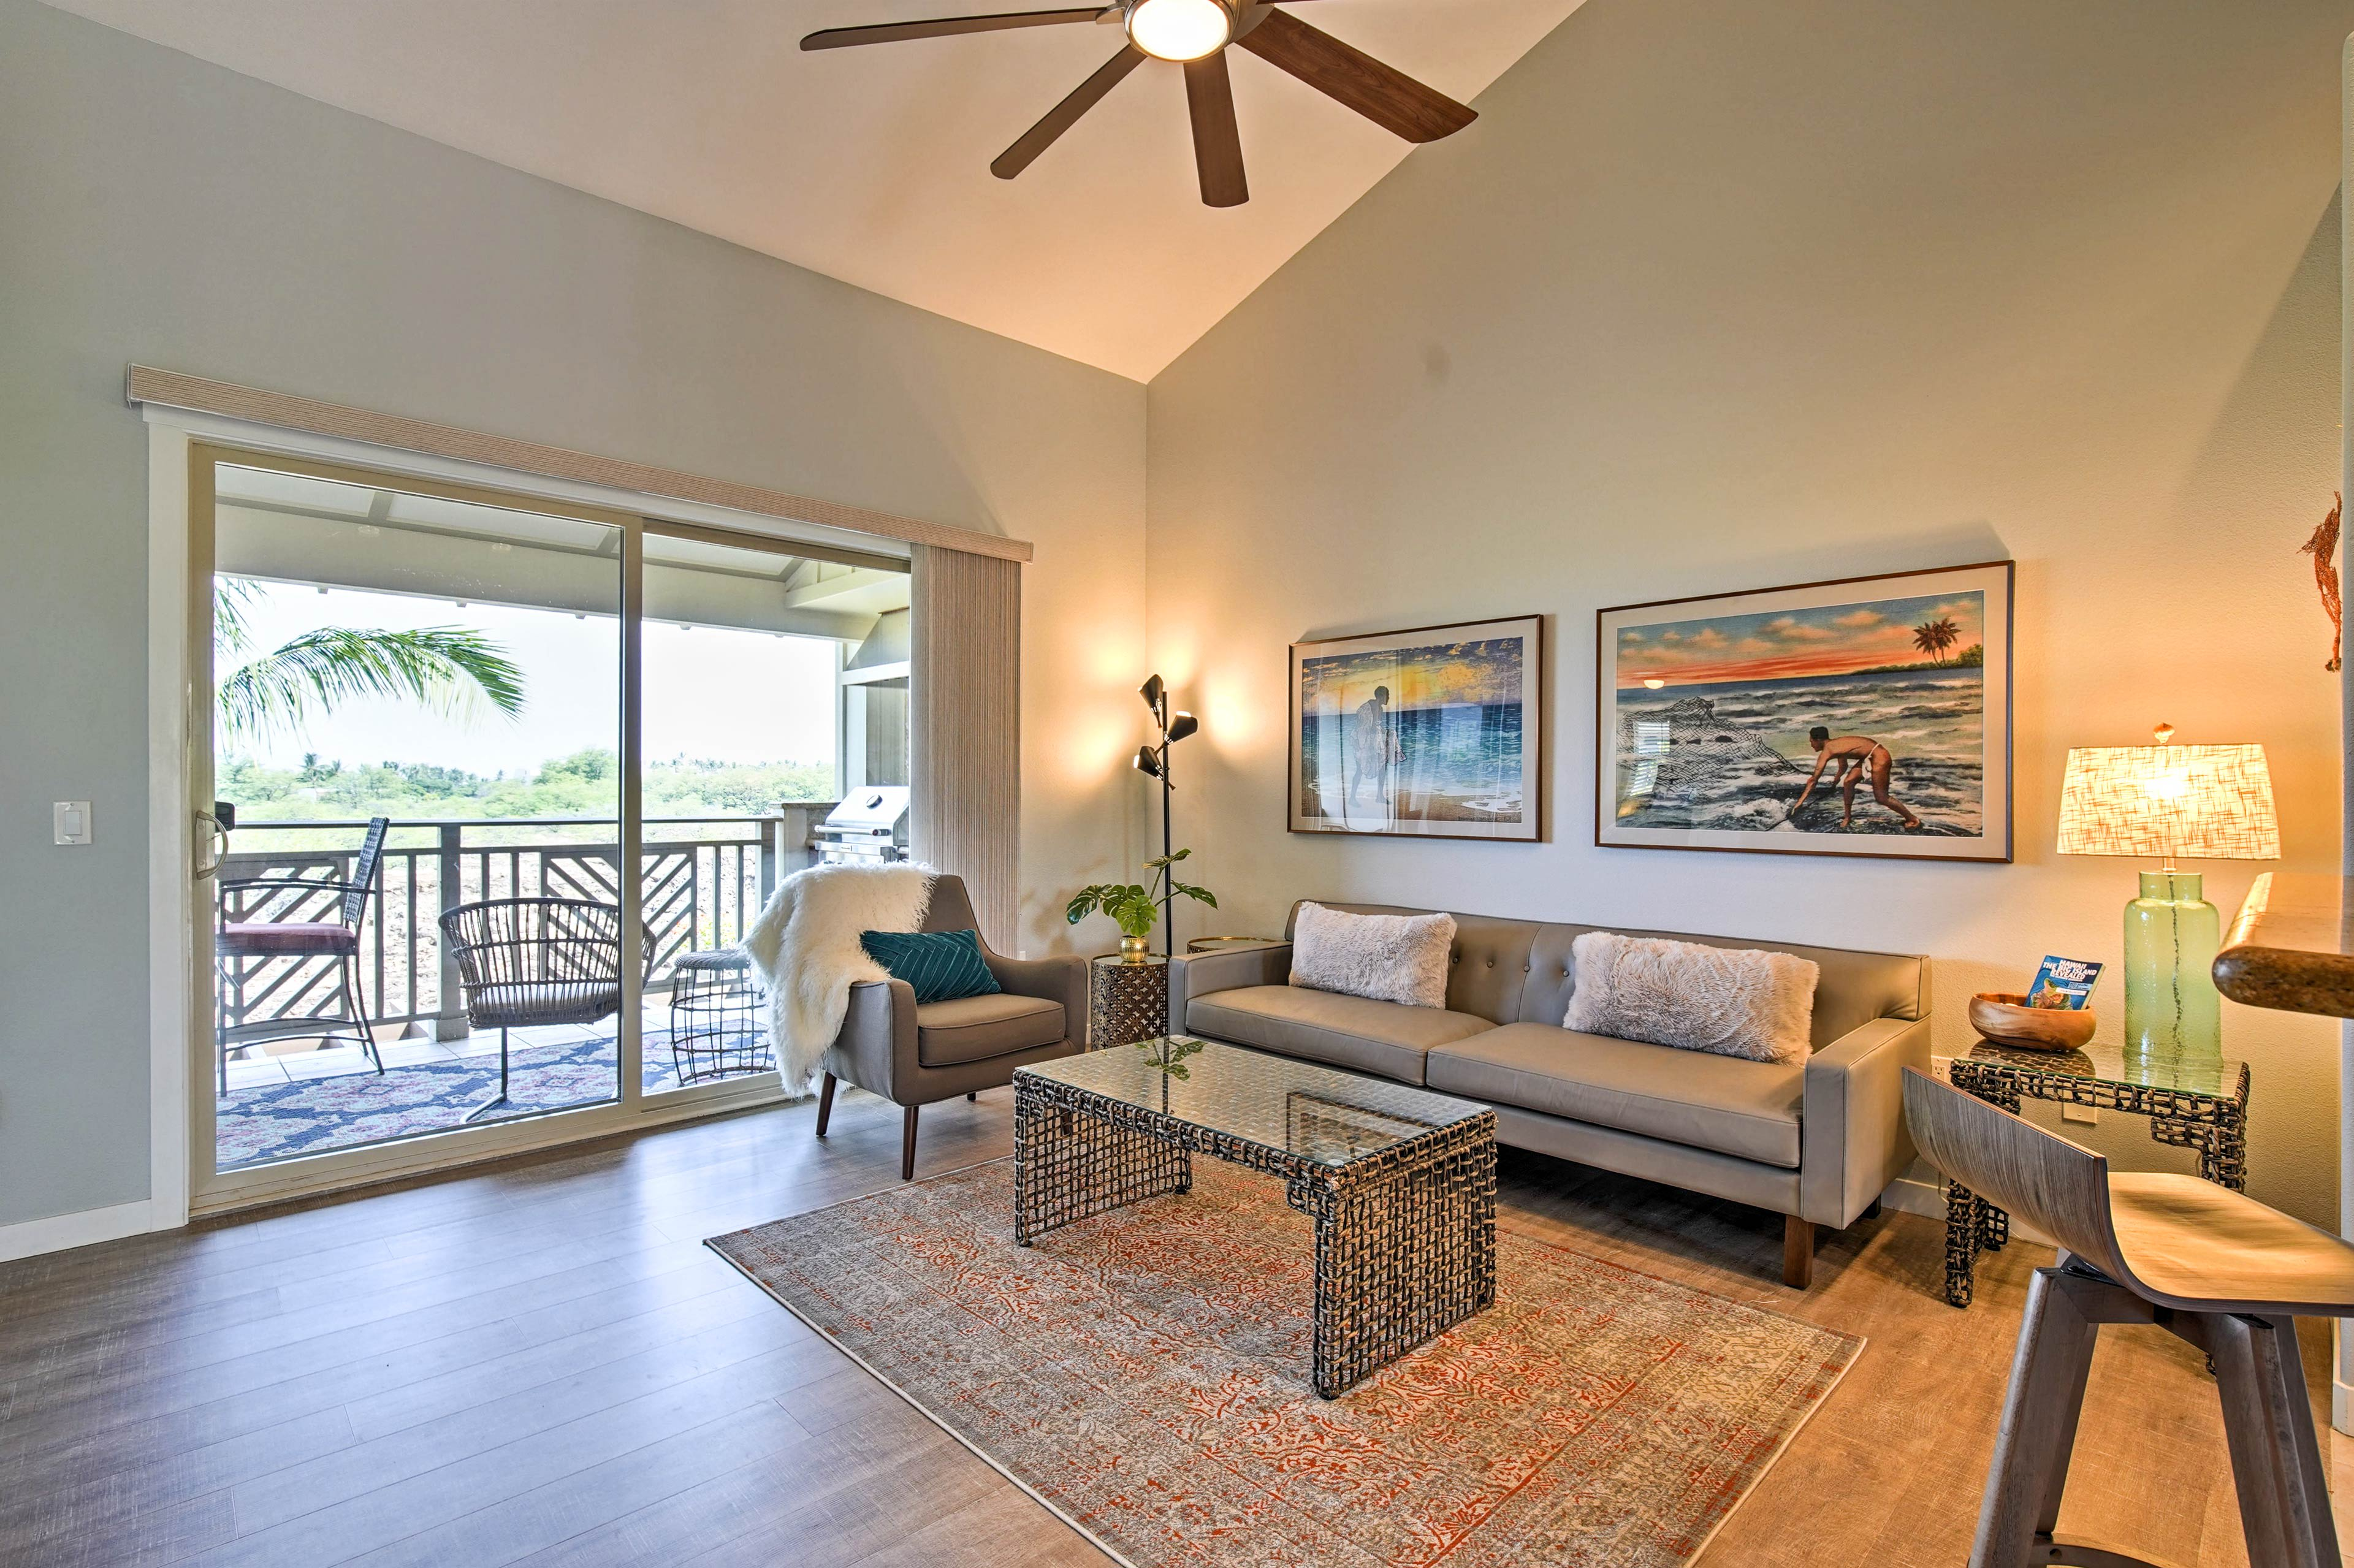 Unwind on the new furnishings in the living room featuring vaulted ceilings.